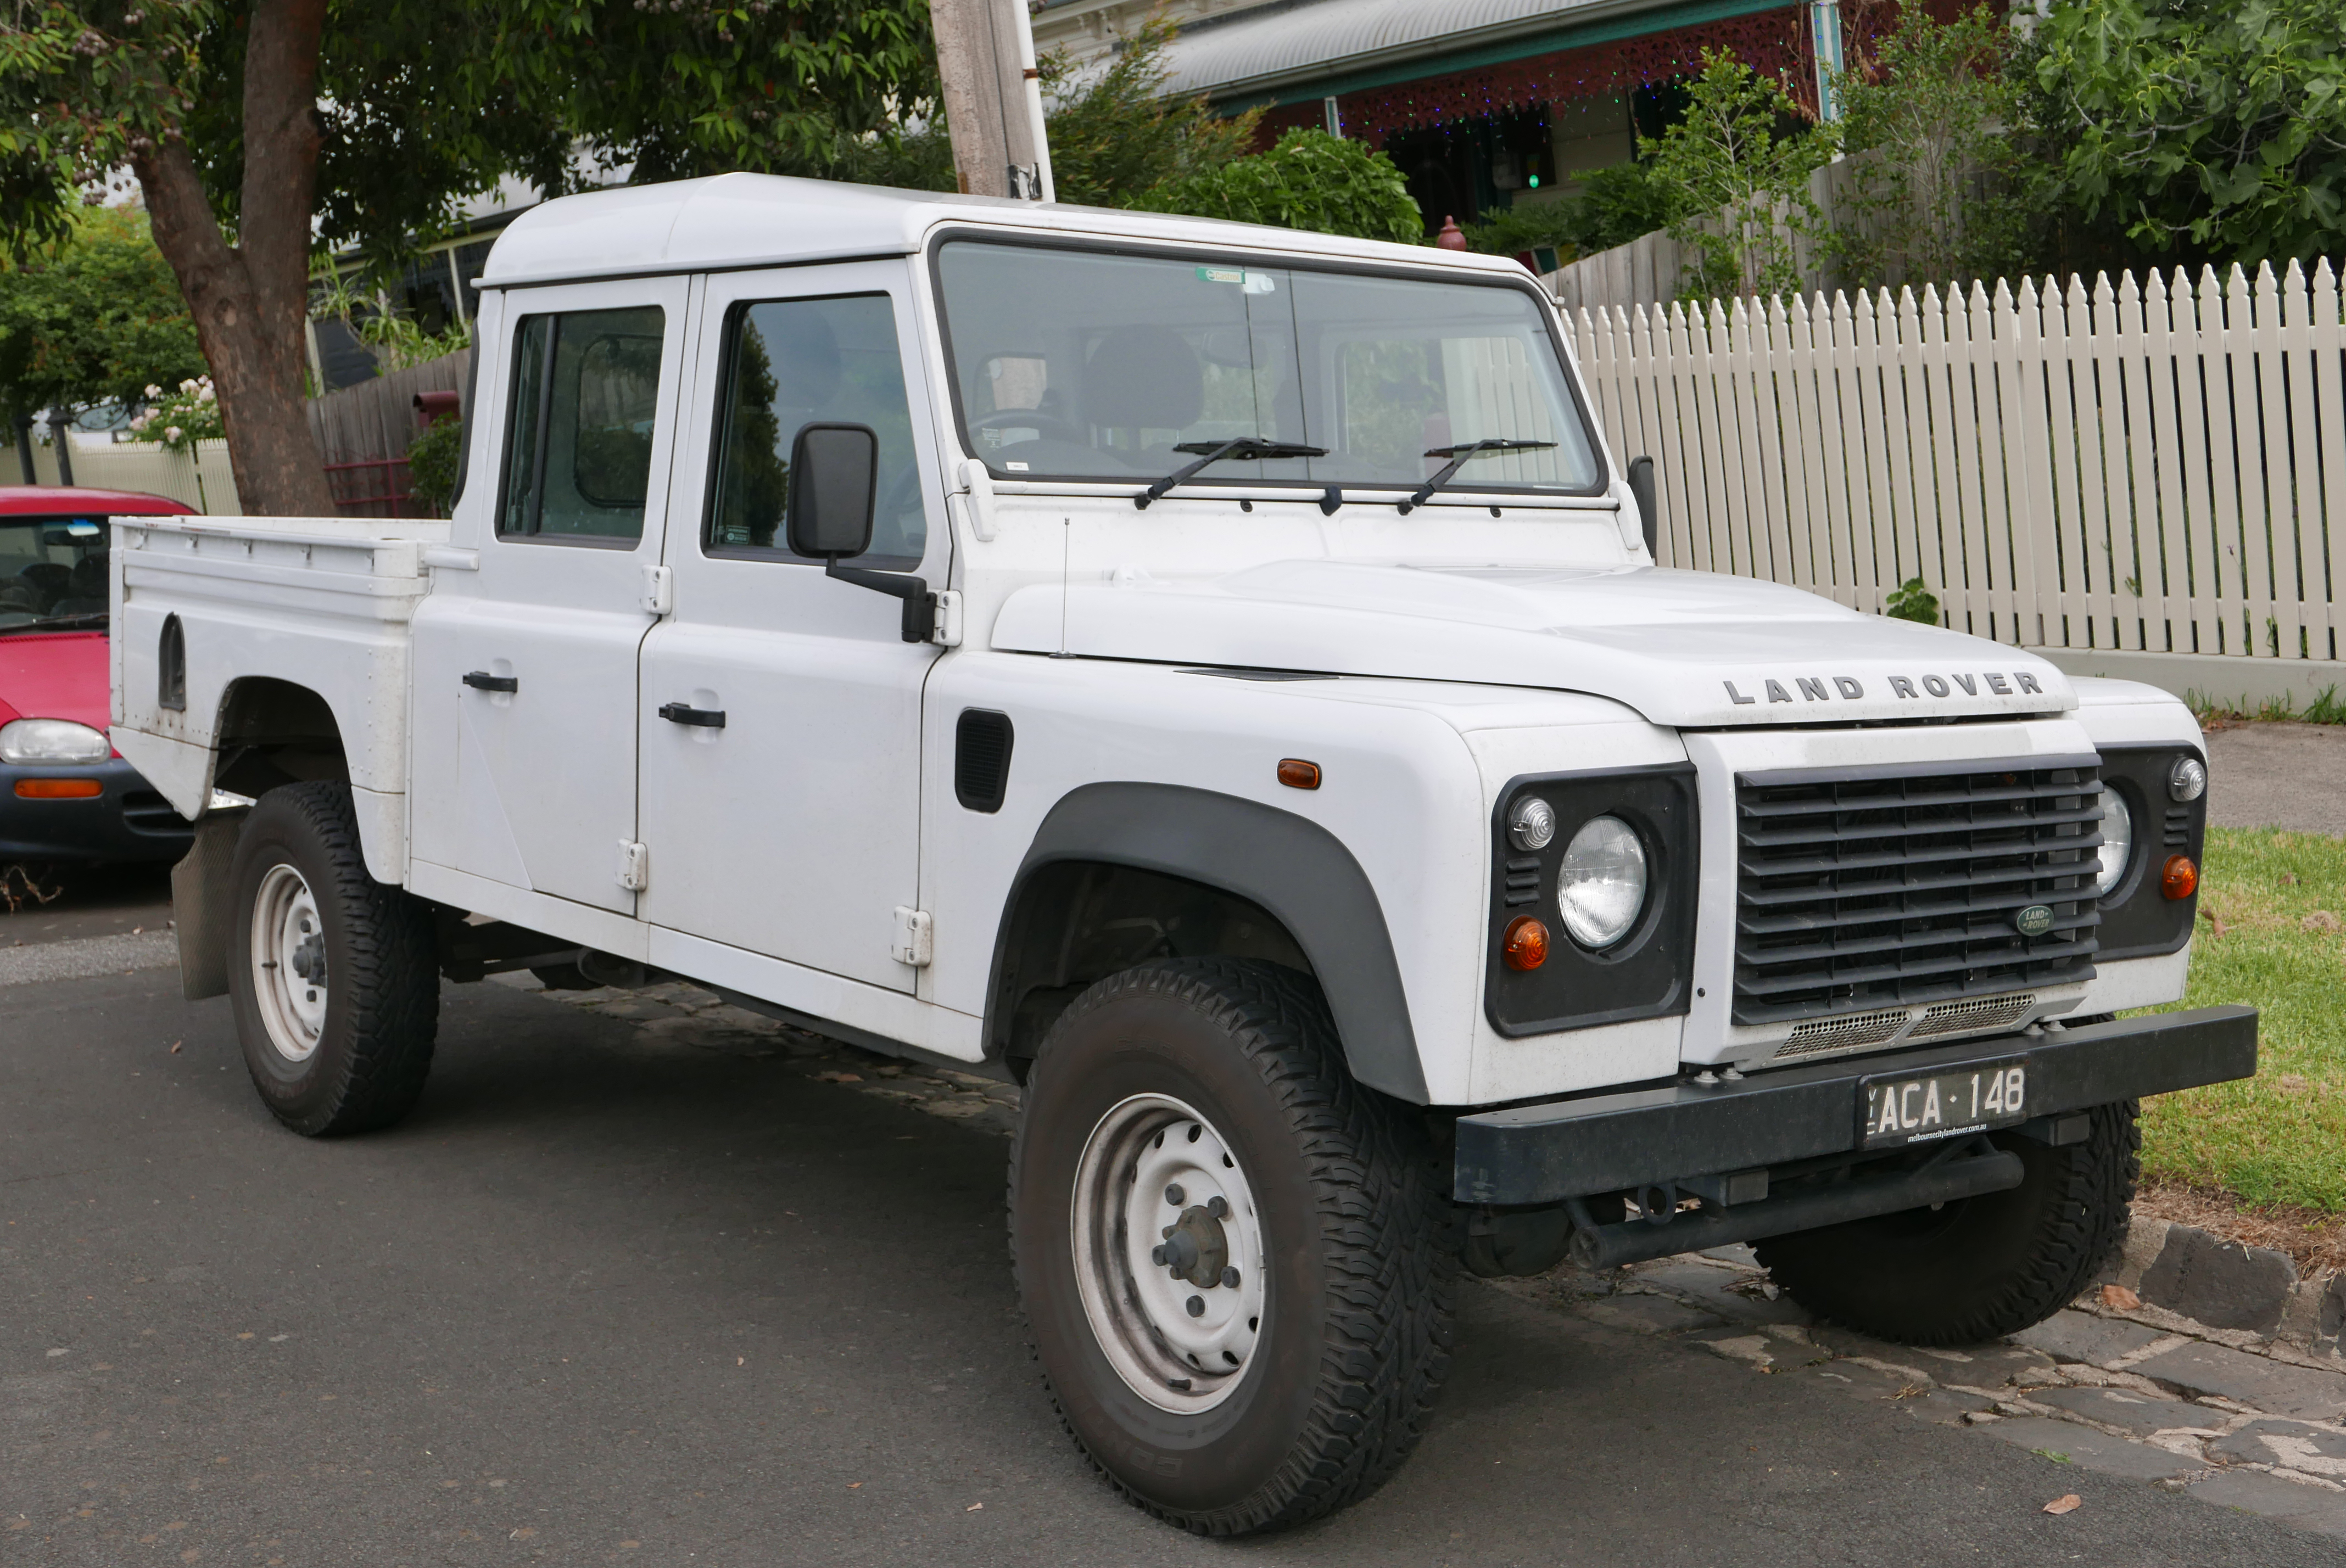 https://upload.wikimedia.org/wikipedia/commons/5/52/2013_Land_Rover_Defender_%28L316_MY13%29_130_4-door_utility_%282015-11-11%29_01.jpg